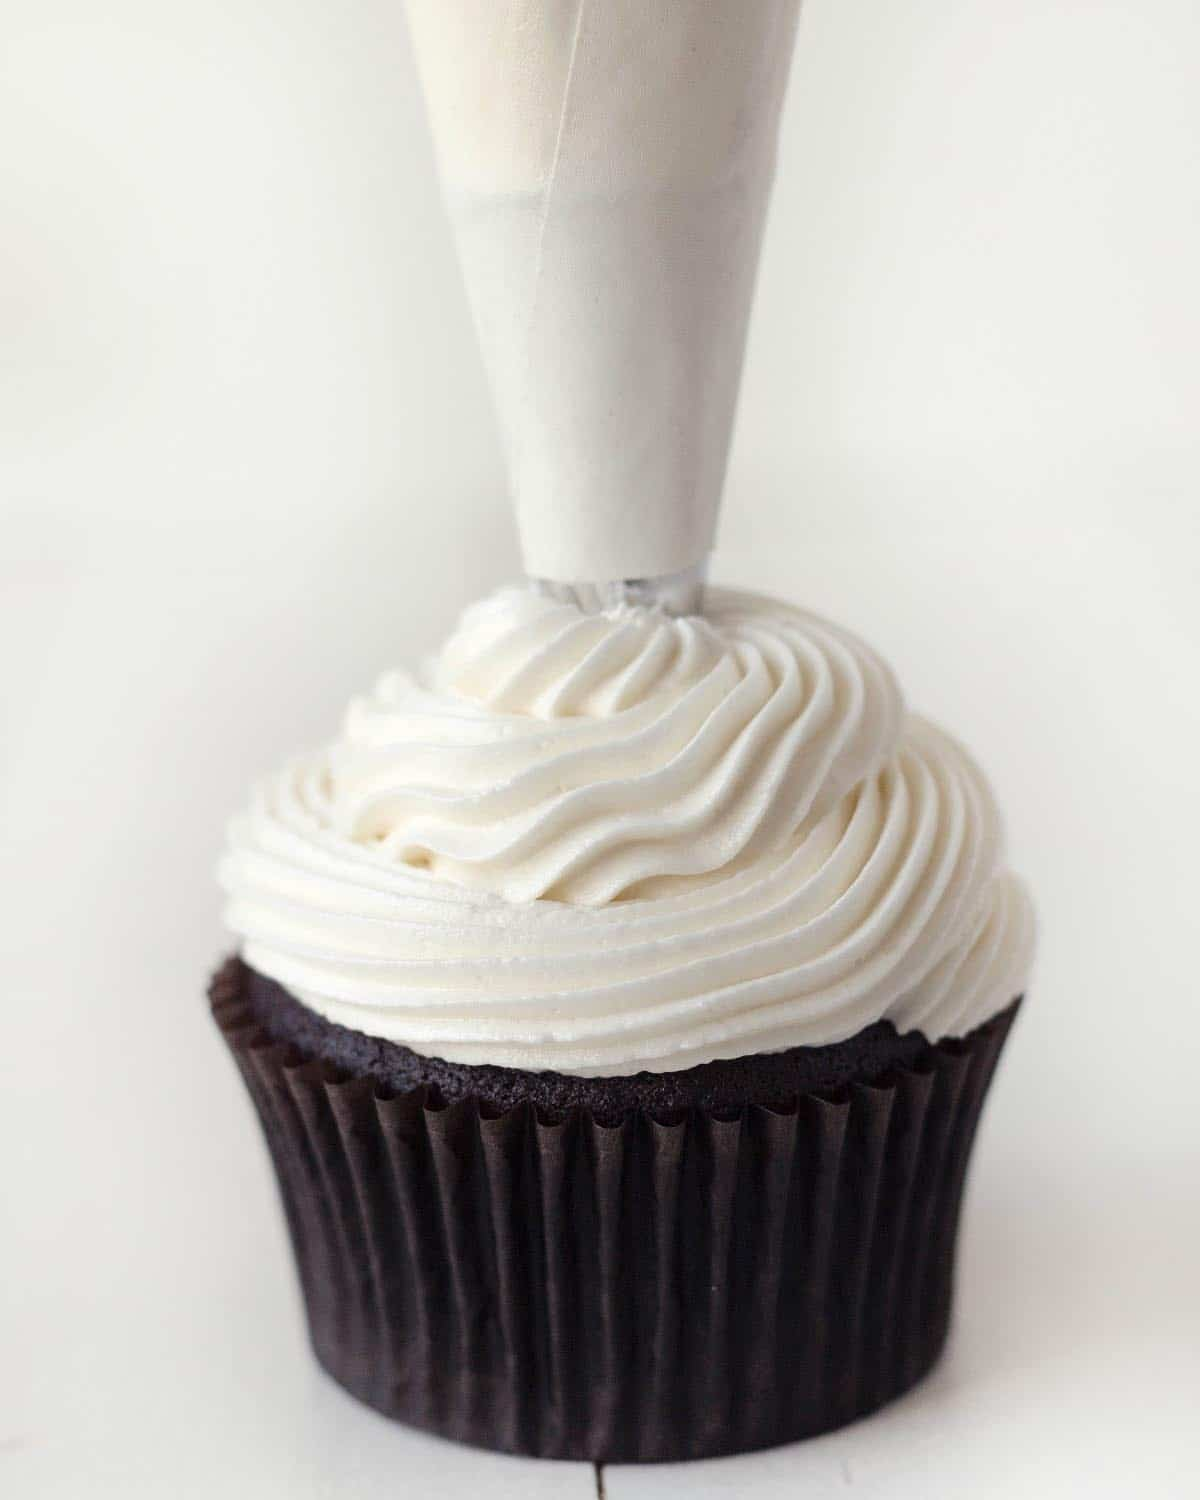 Peppermint frosting being piped onto a cupcake using a cream coloured piping bag.